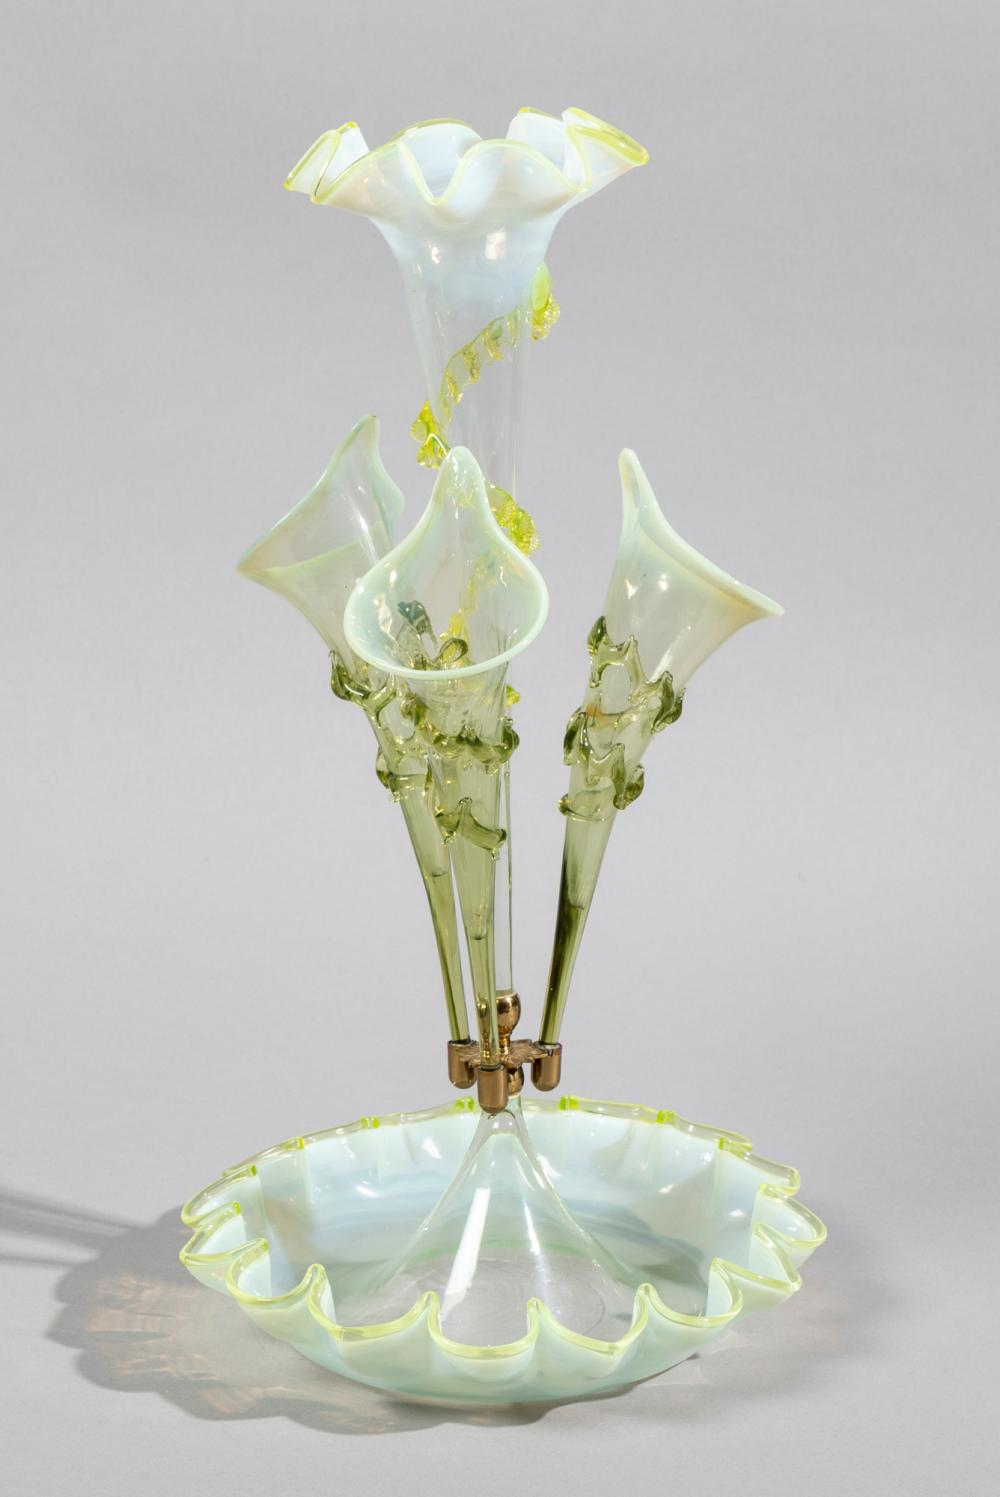 Antique American Opalescent Vaseline Glass Epergne, circa 1880-1900